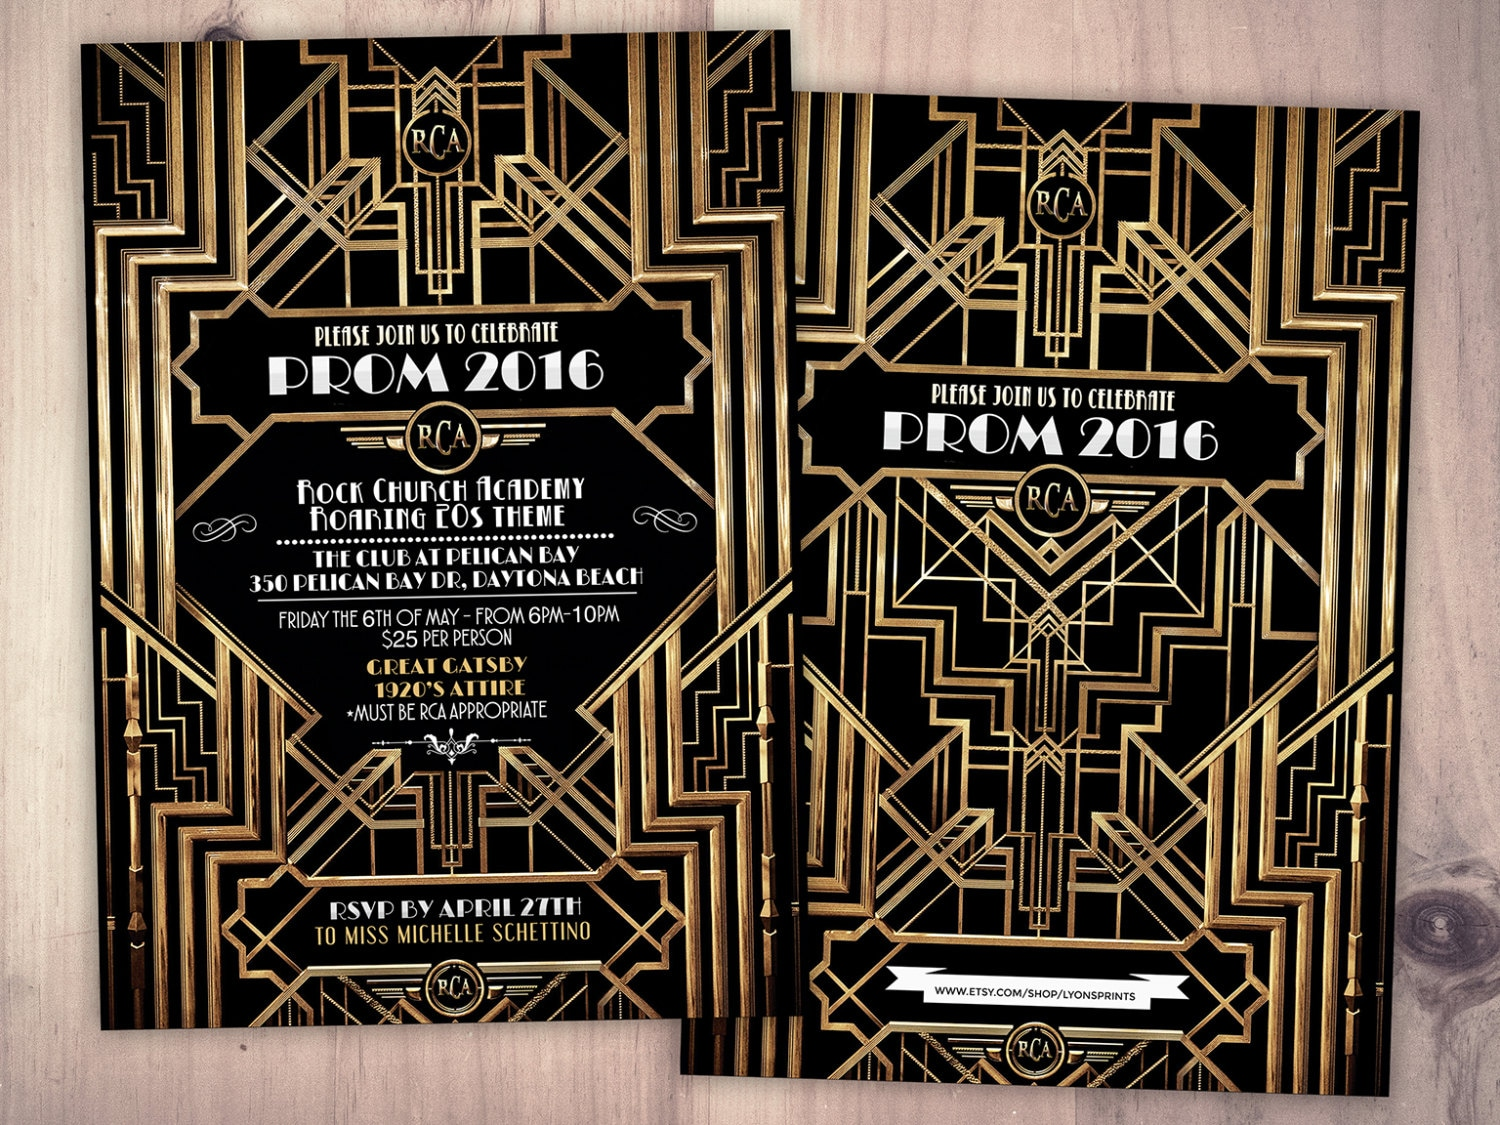 Great Gatsby prom invitation Roaring 20s Hollywood film theme